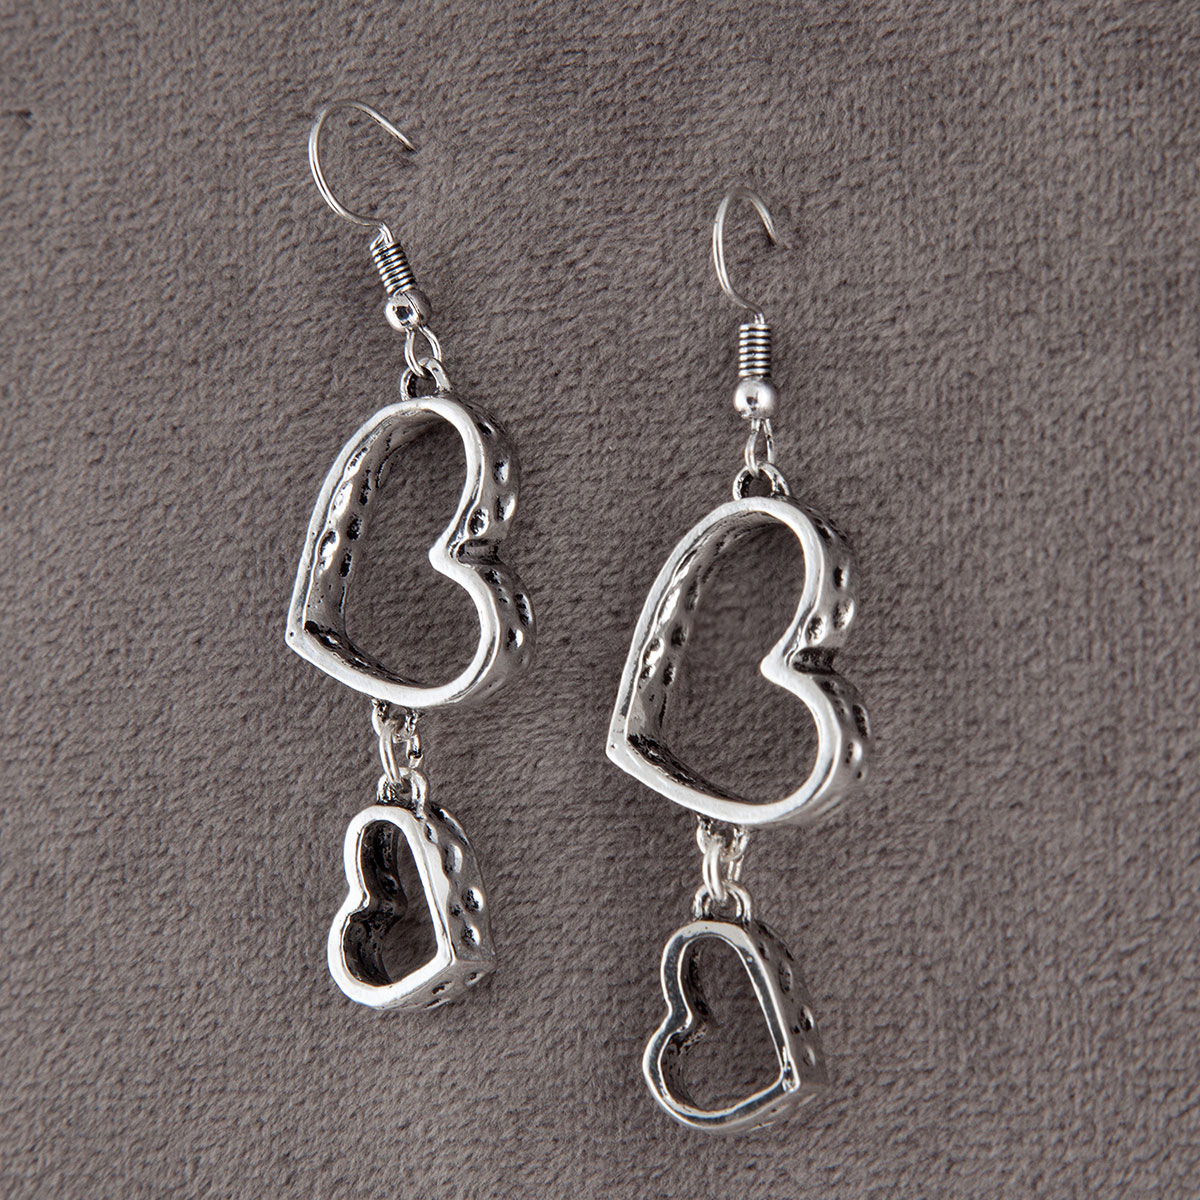 Antique Silver Double Heart Dangle French Wire Earrings